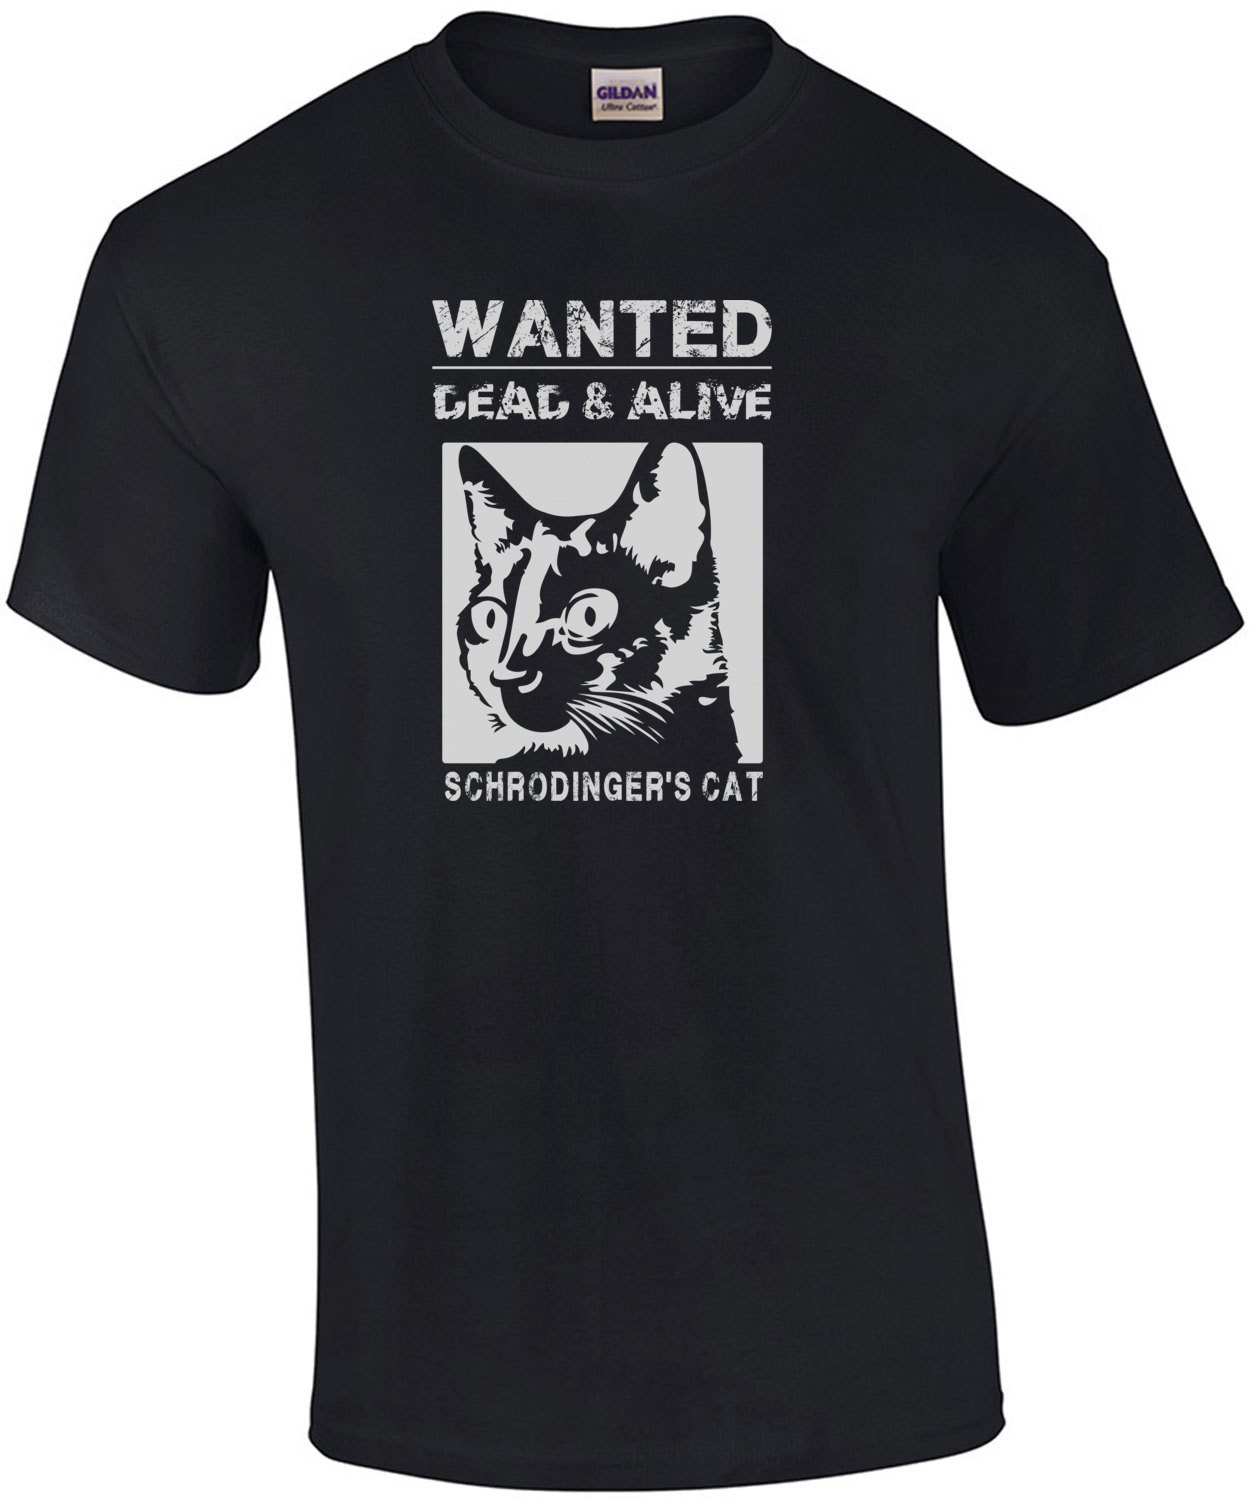 Schrodingers Cat - Wanted dead and alive - Funny T-Shirt